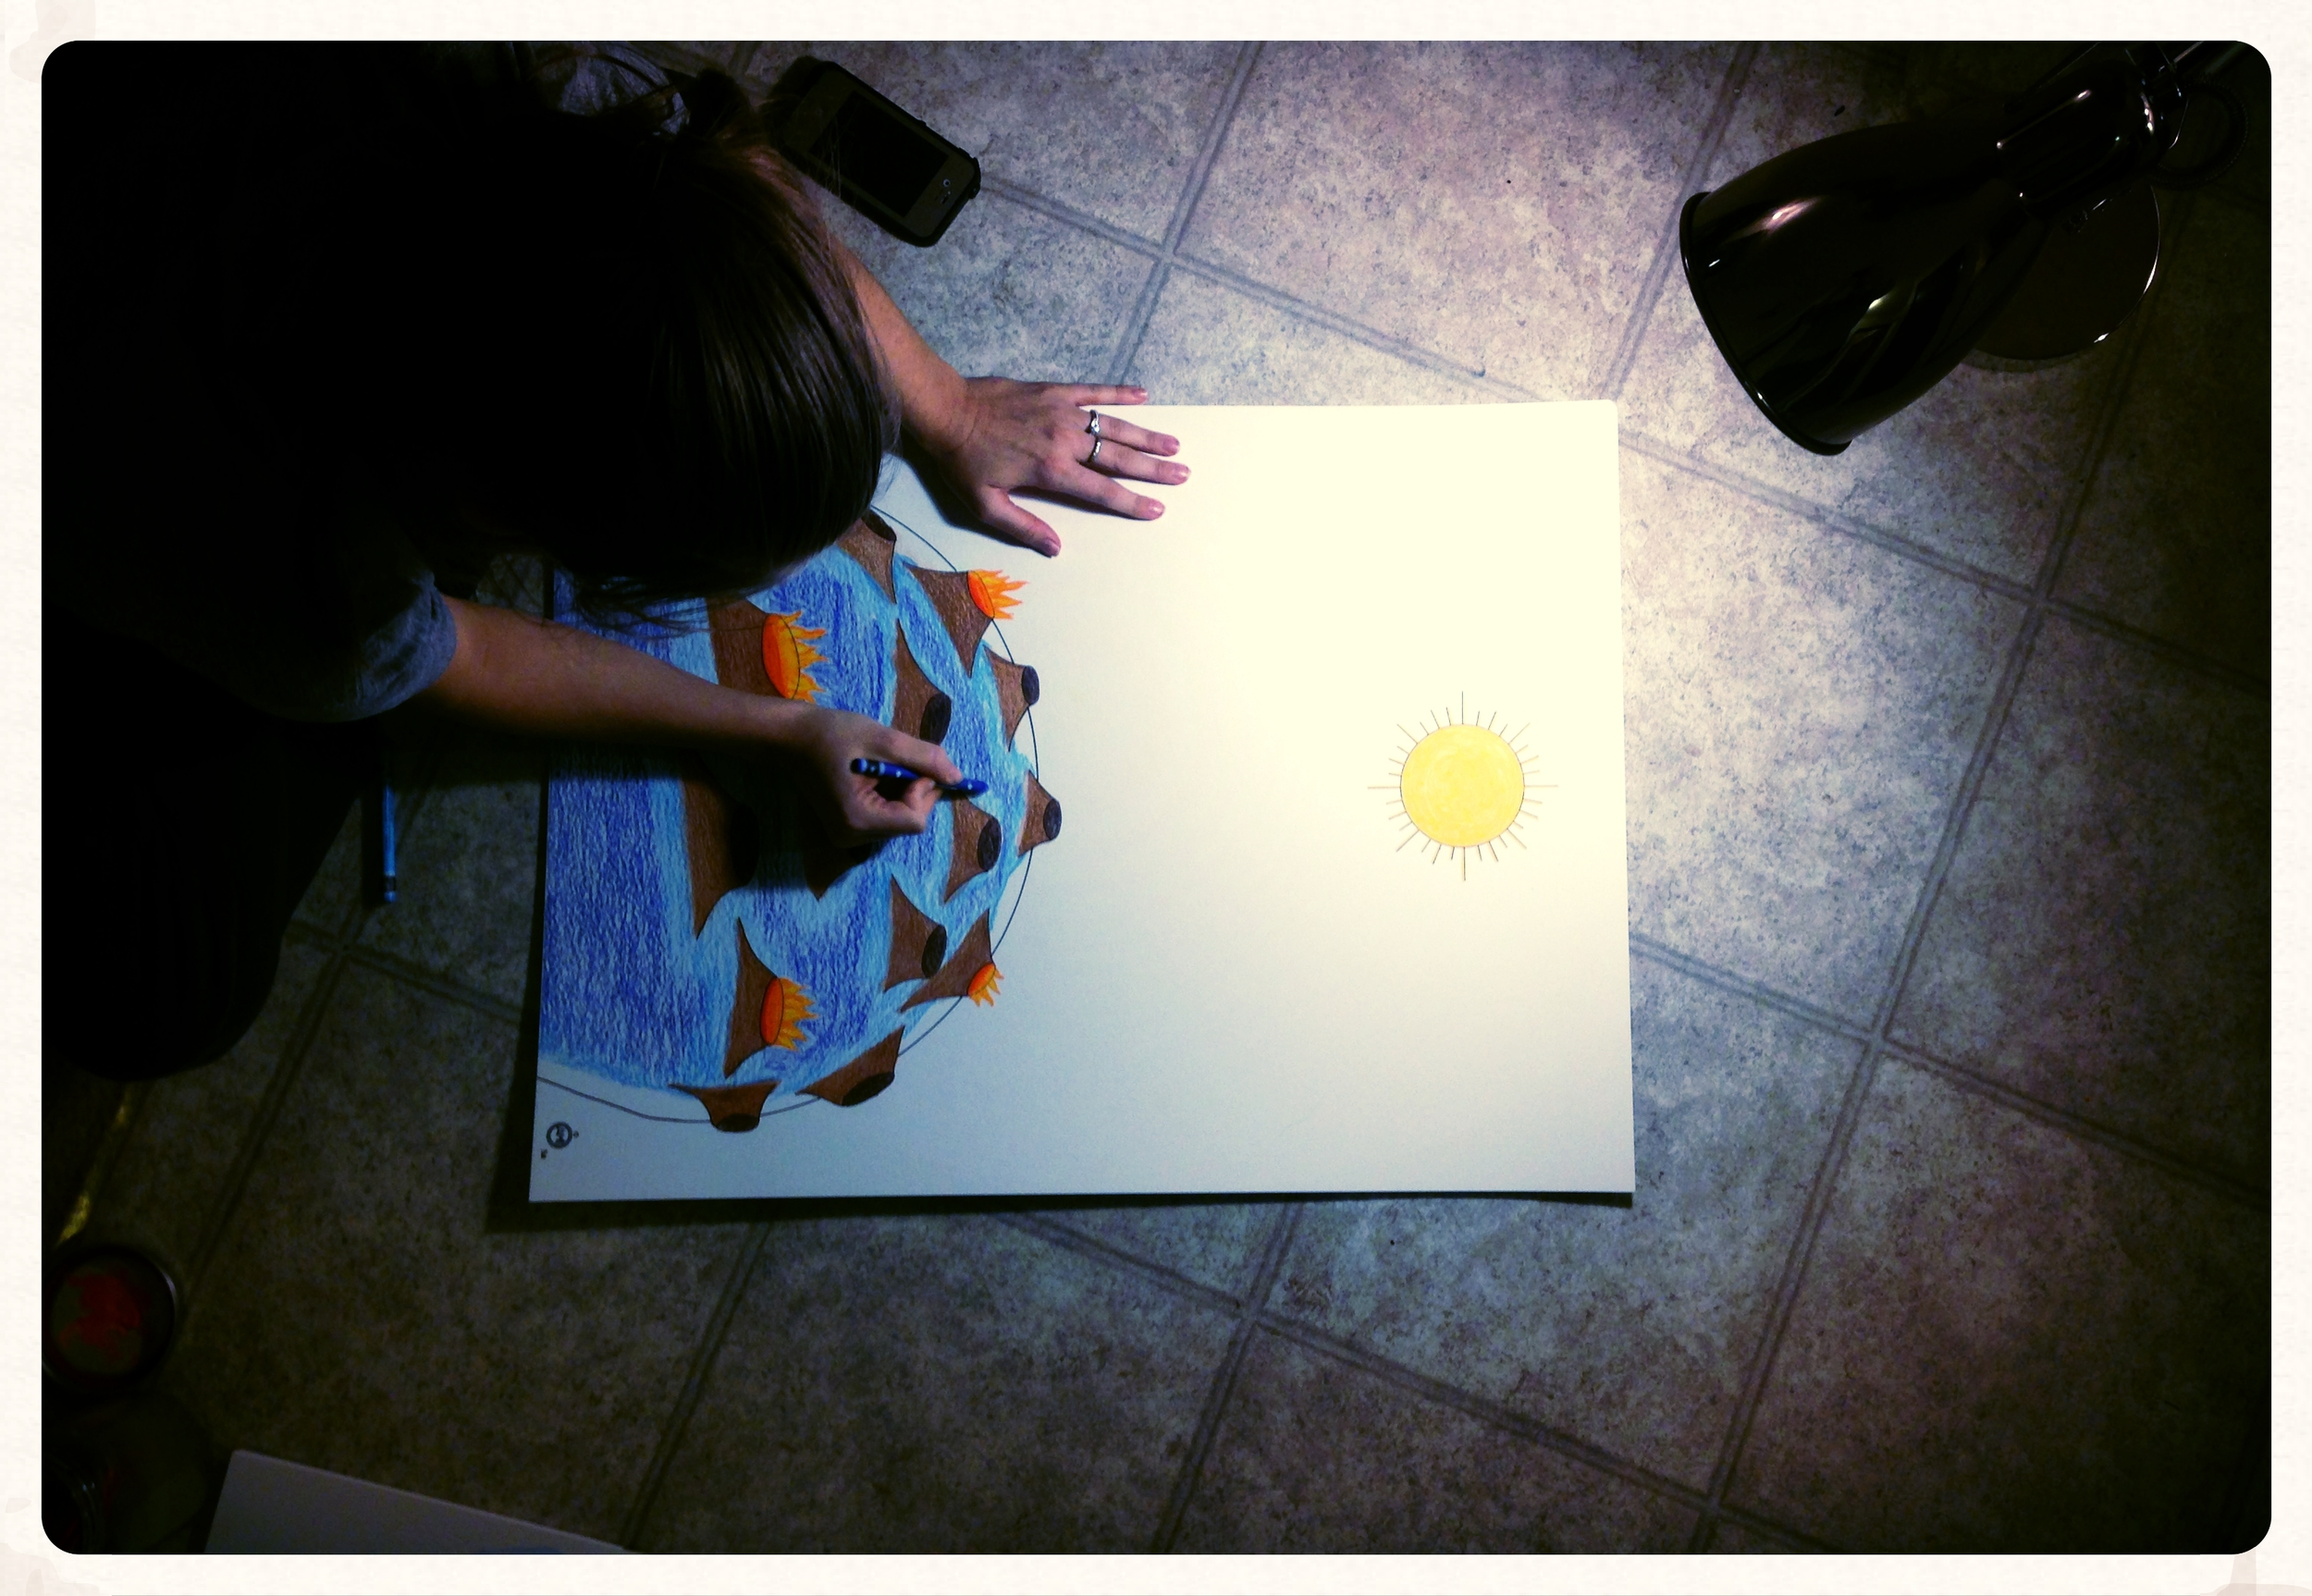 And yes, due to lack of desk space, I paint my charts in the kitchen floor!